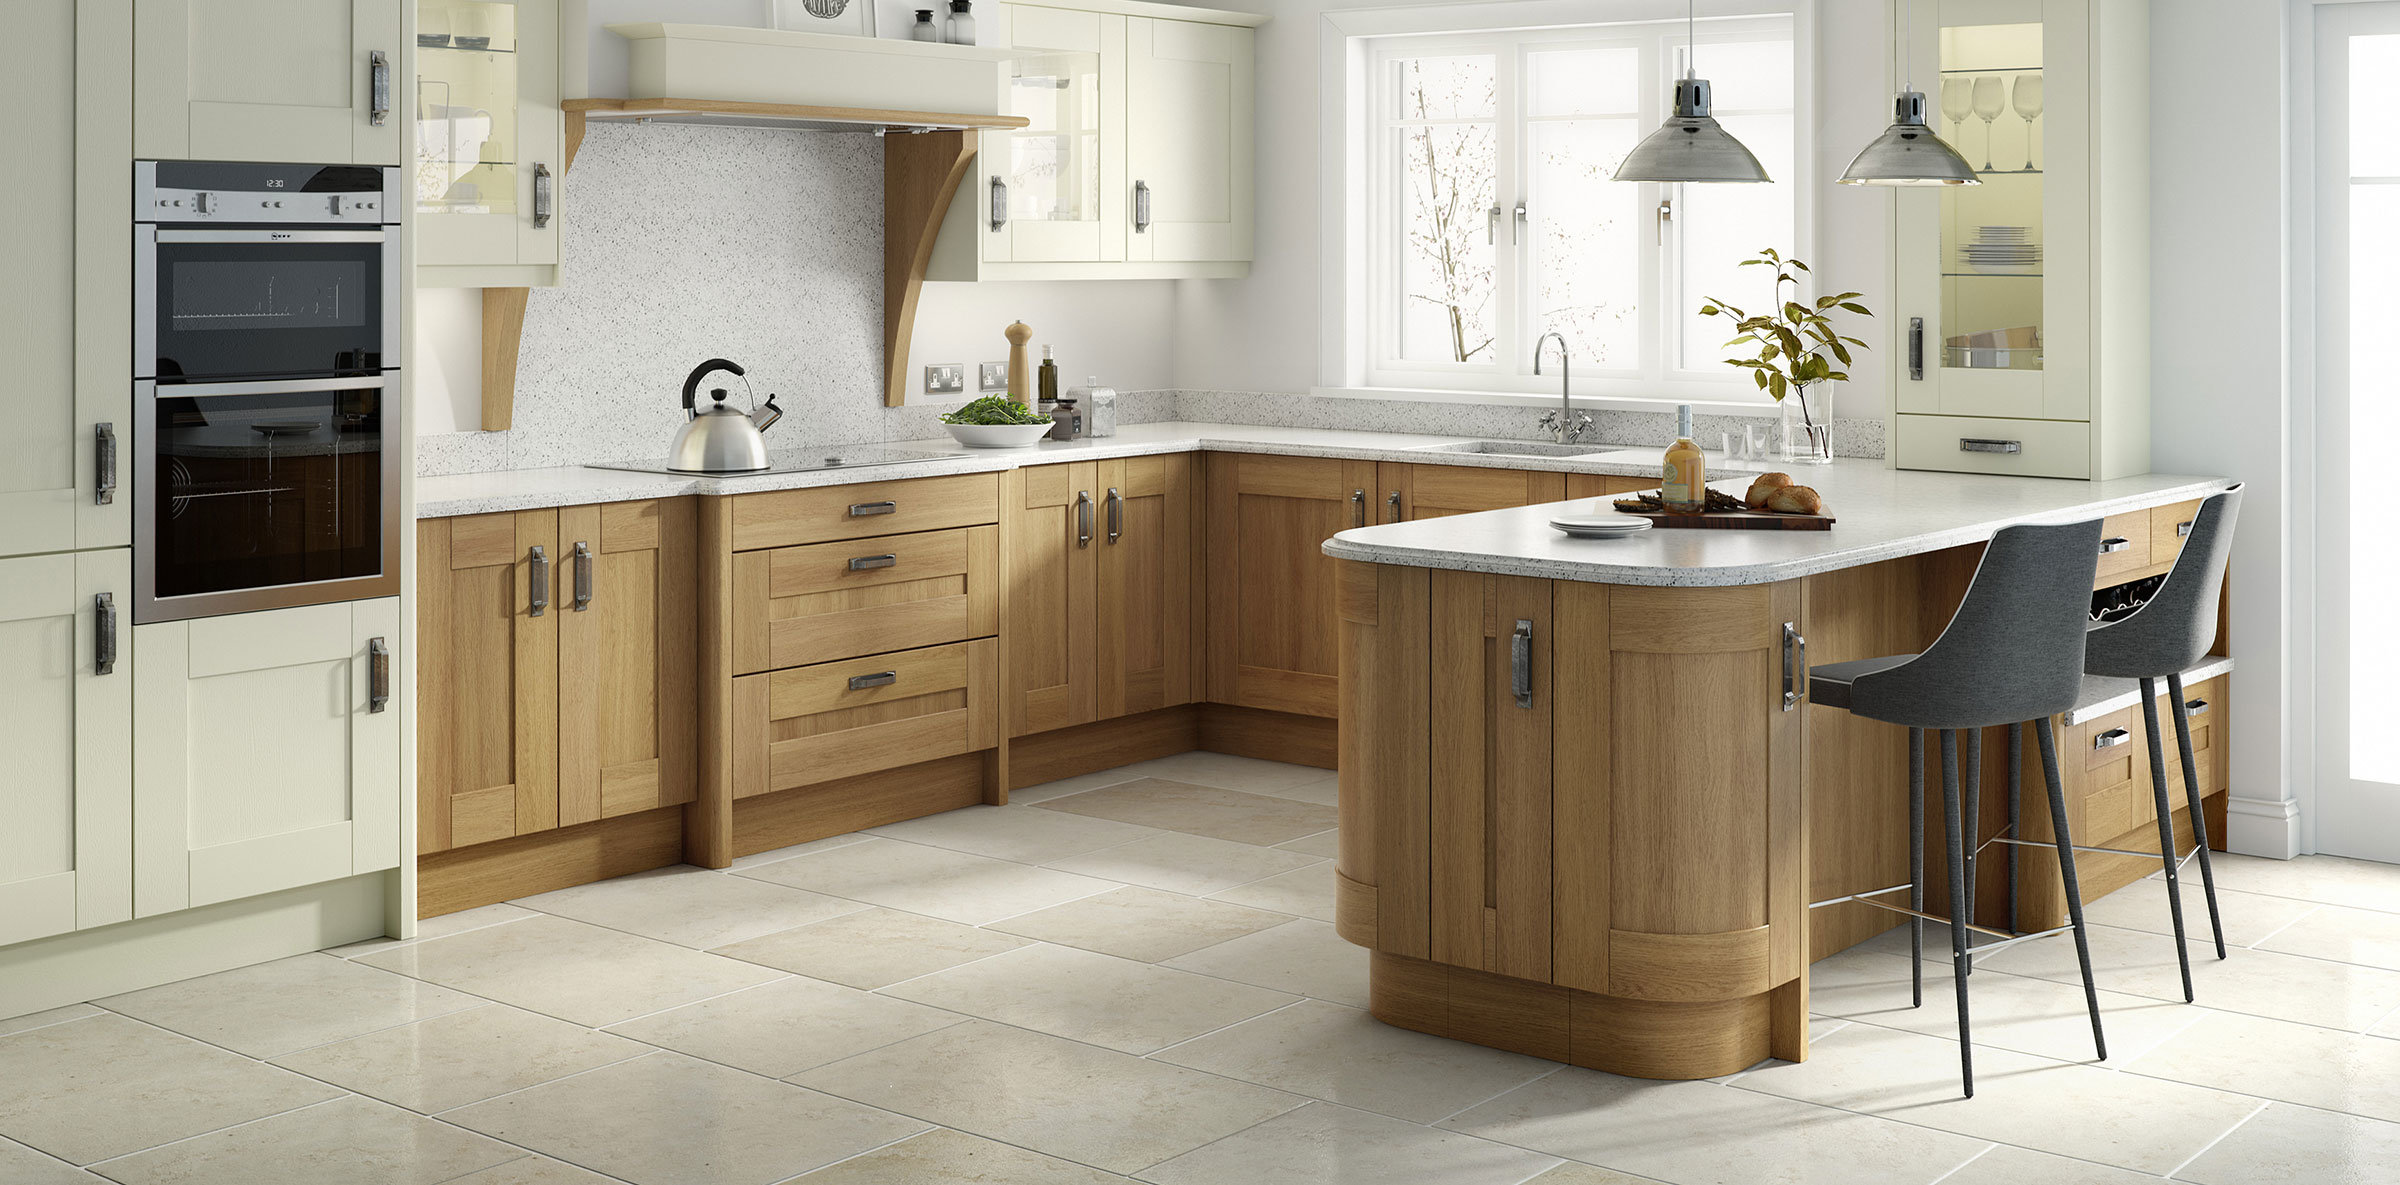 broadoak_alabaster_oak-kitchen-newcastle